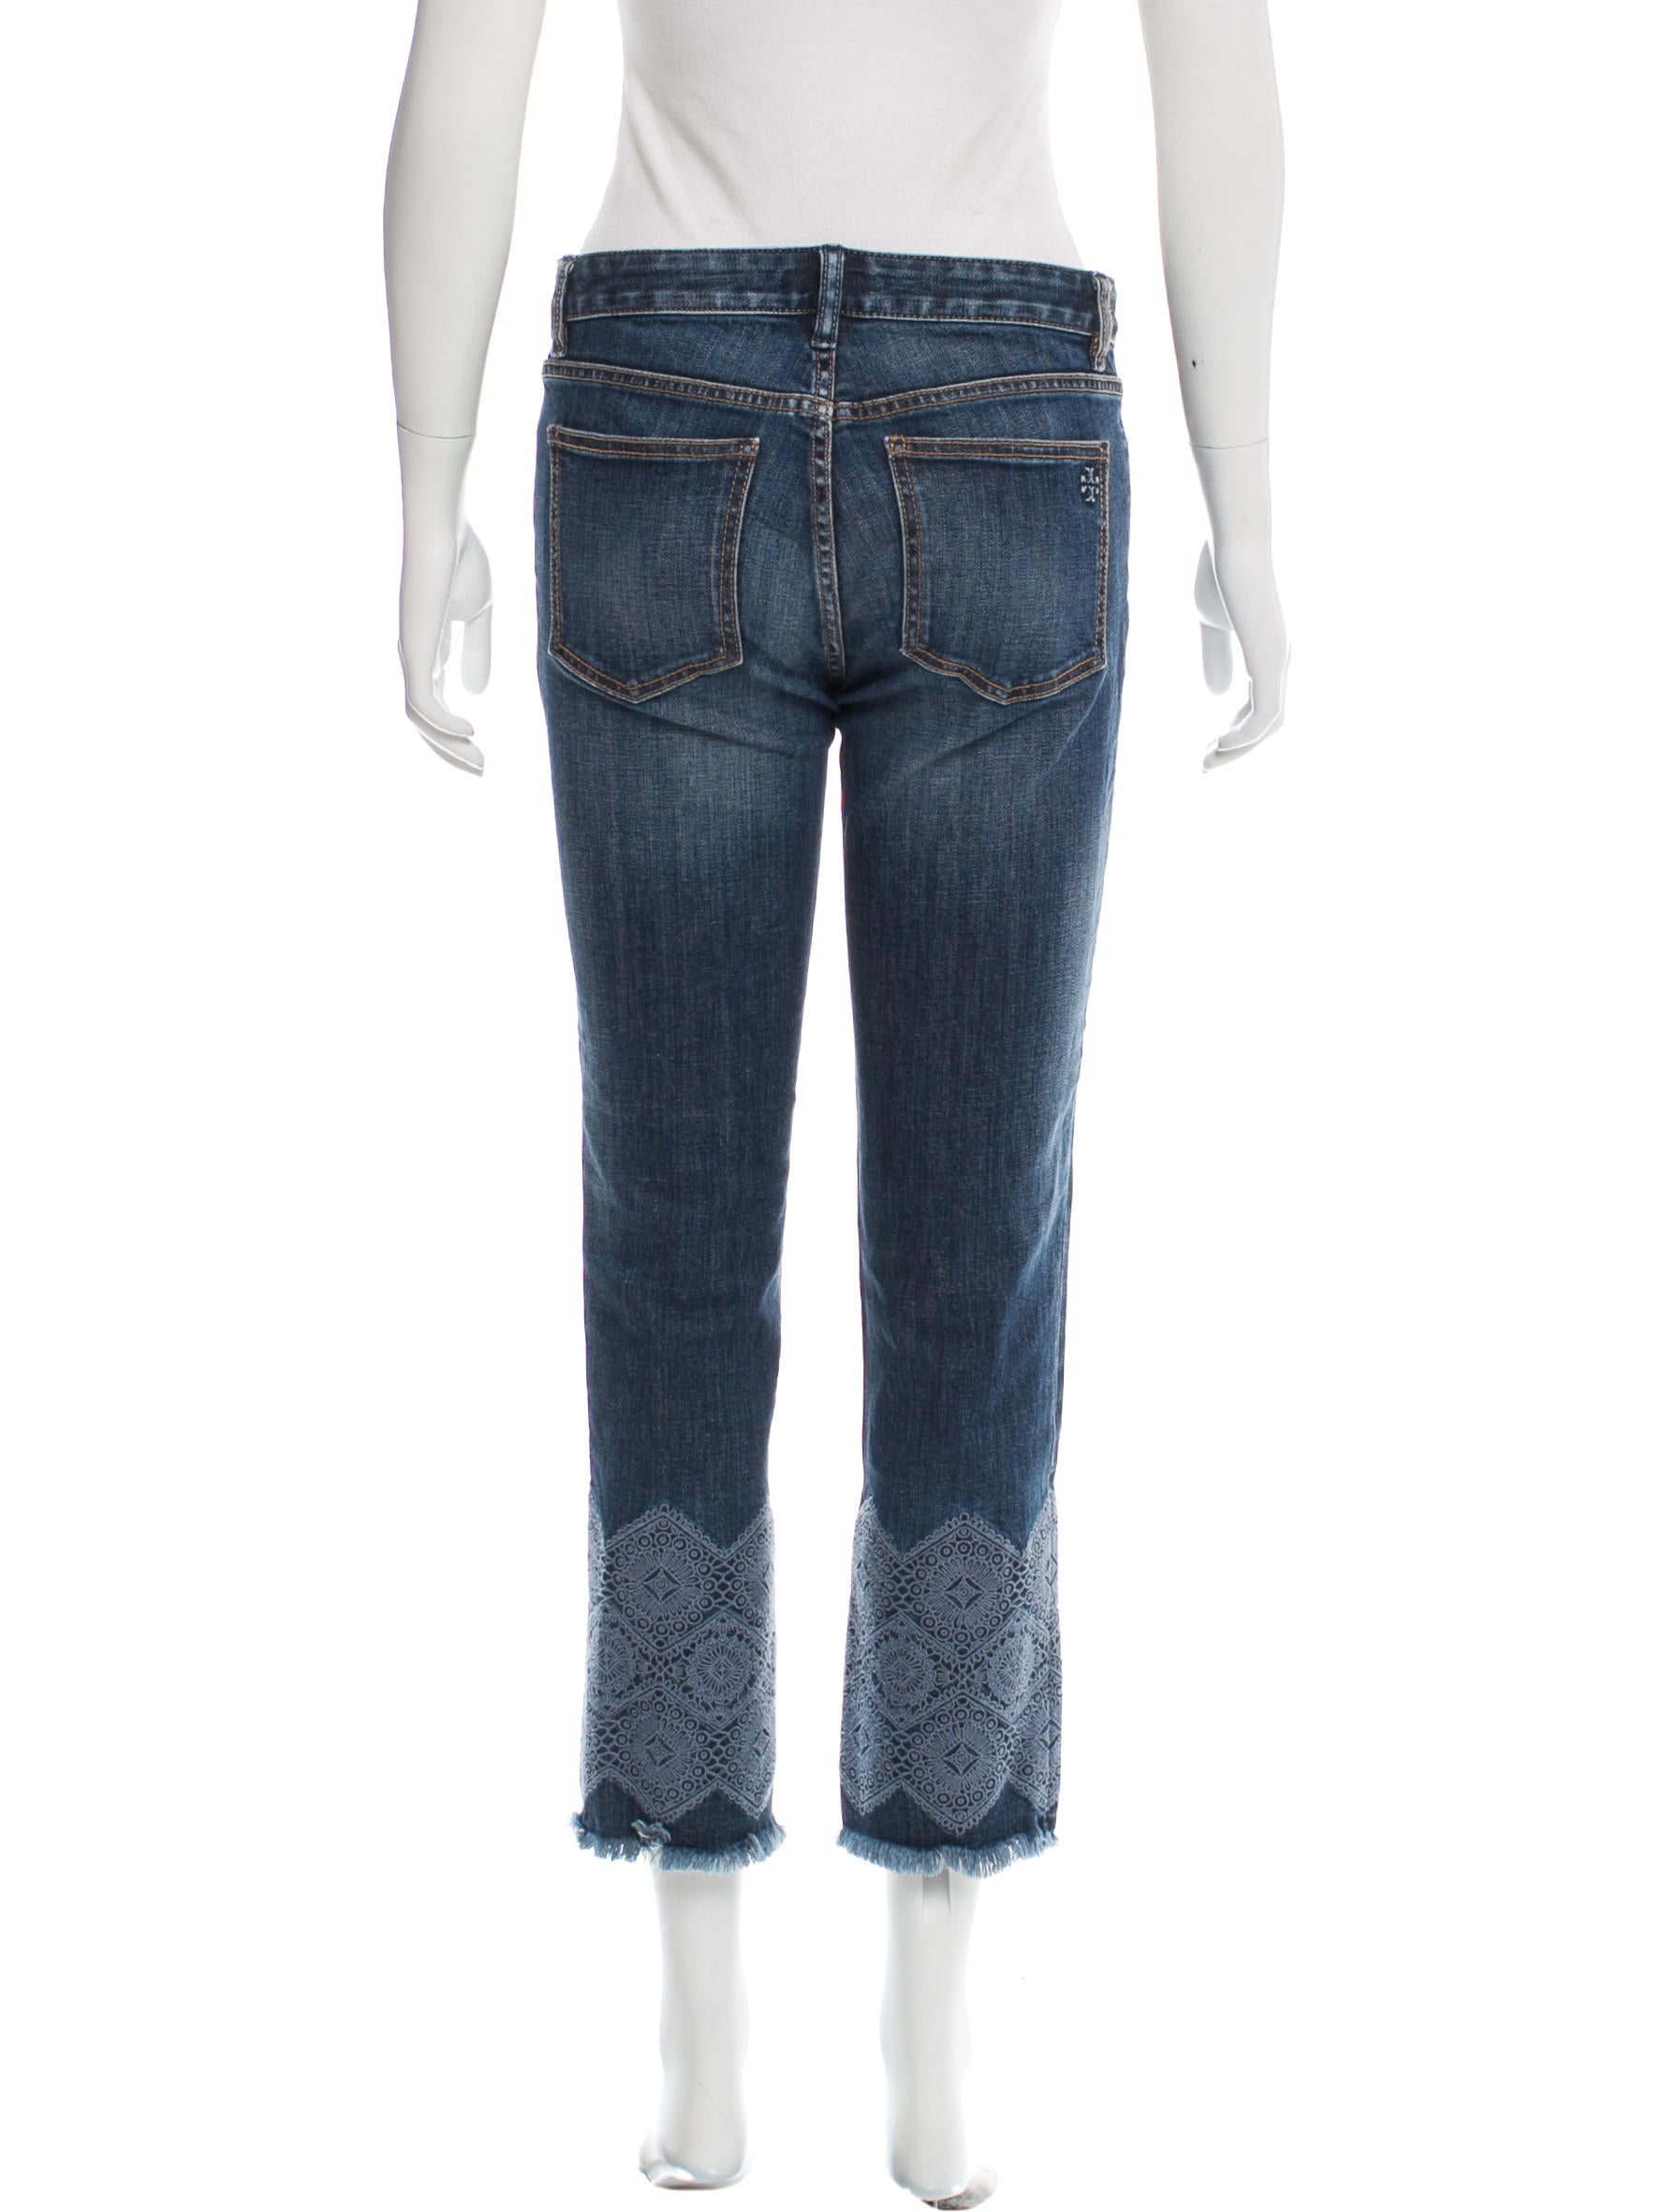 Tory burch embroidered straight leg jeans clothing